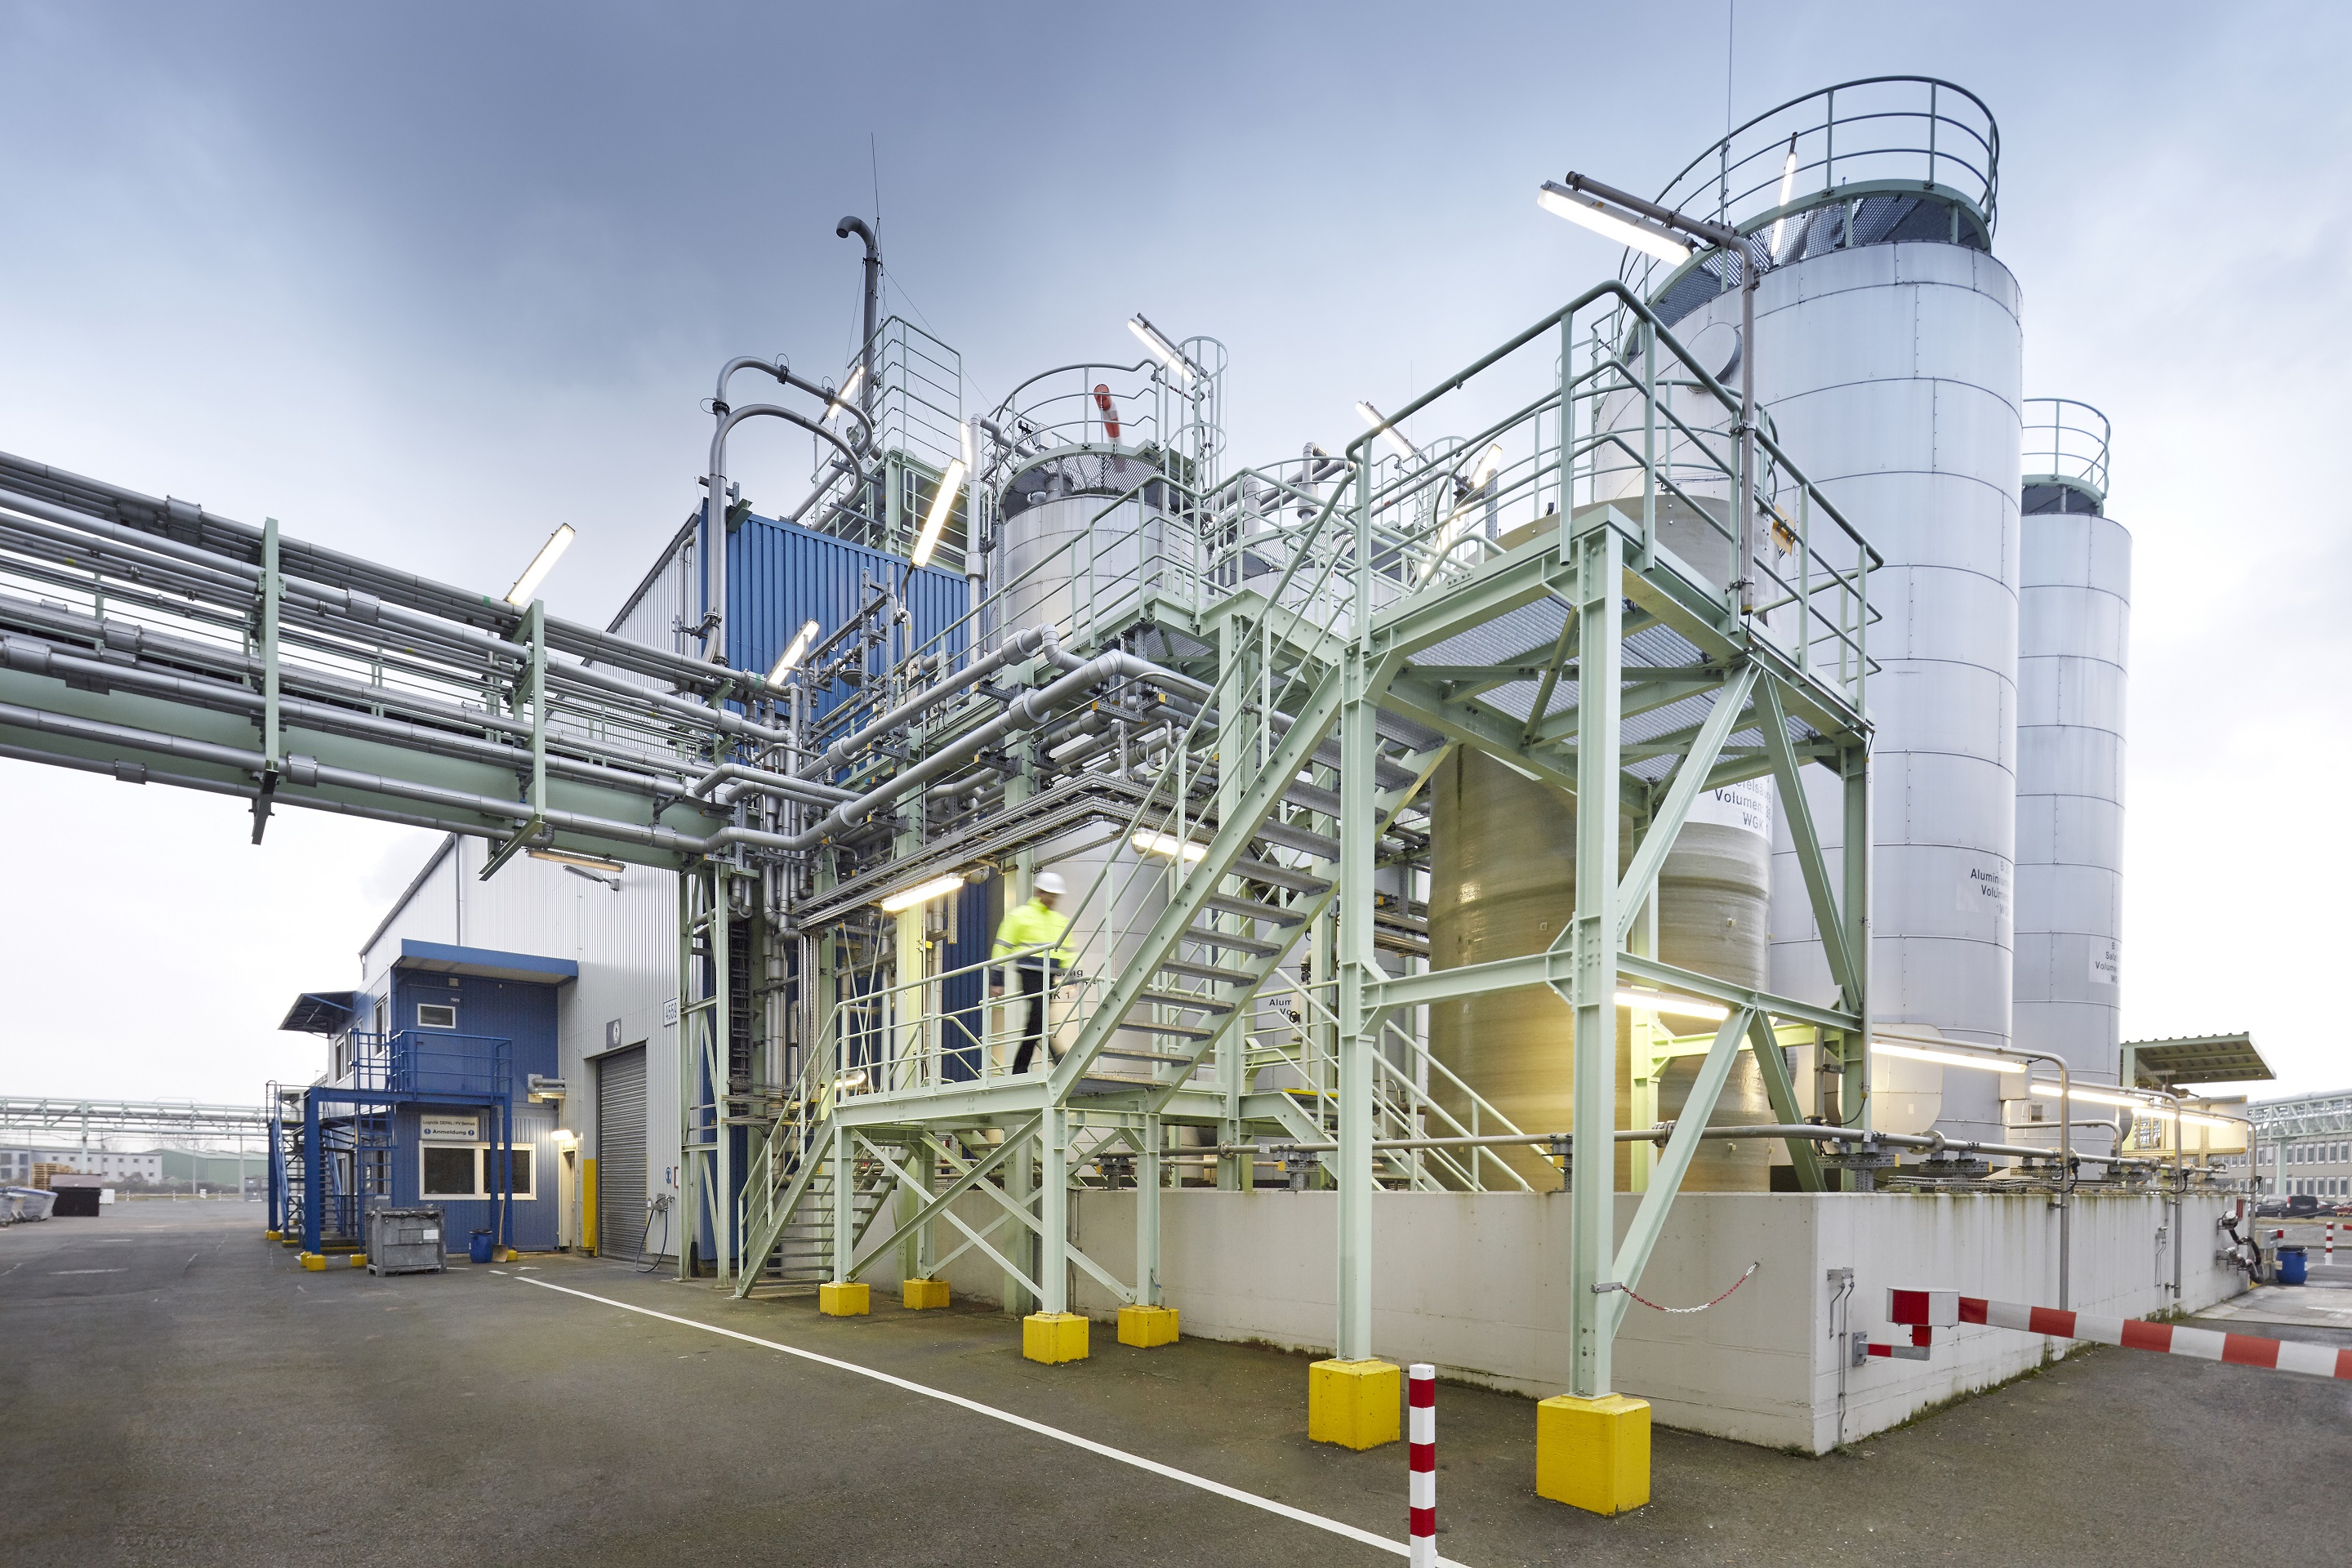 Clariant achieves 100% green electricity consumption at Knapsack production site